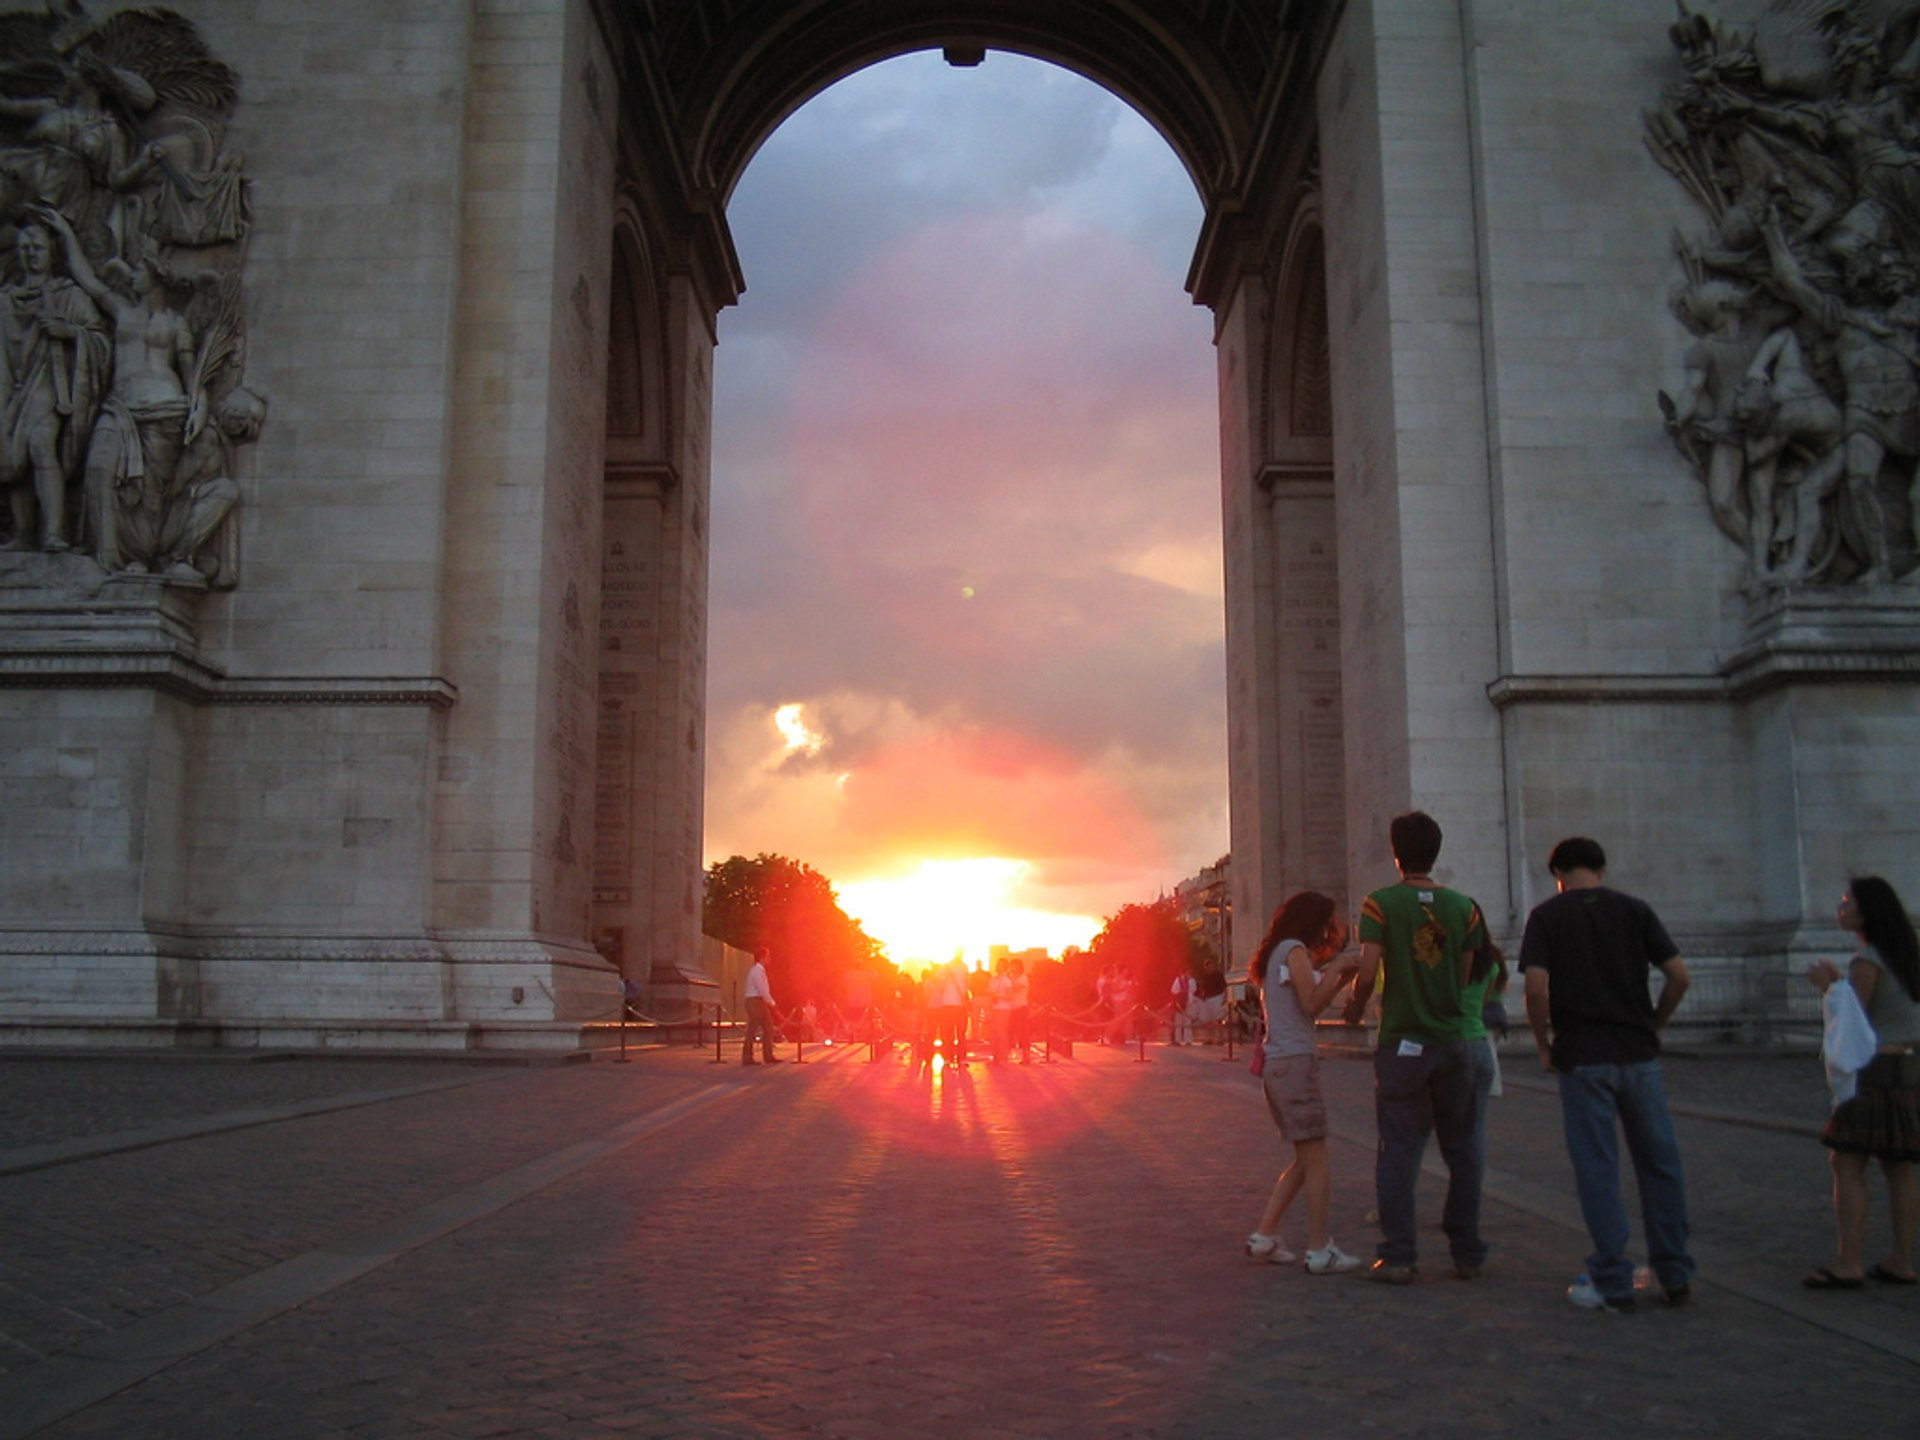 Sunset in the Arc de Triomphe in Paris 2019 - Best Time